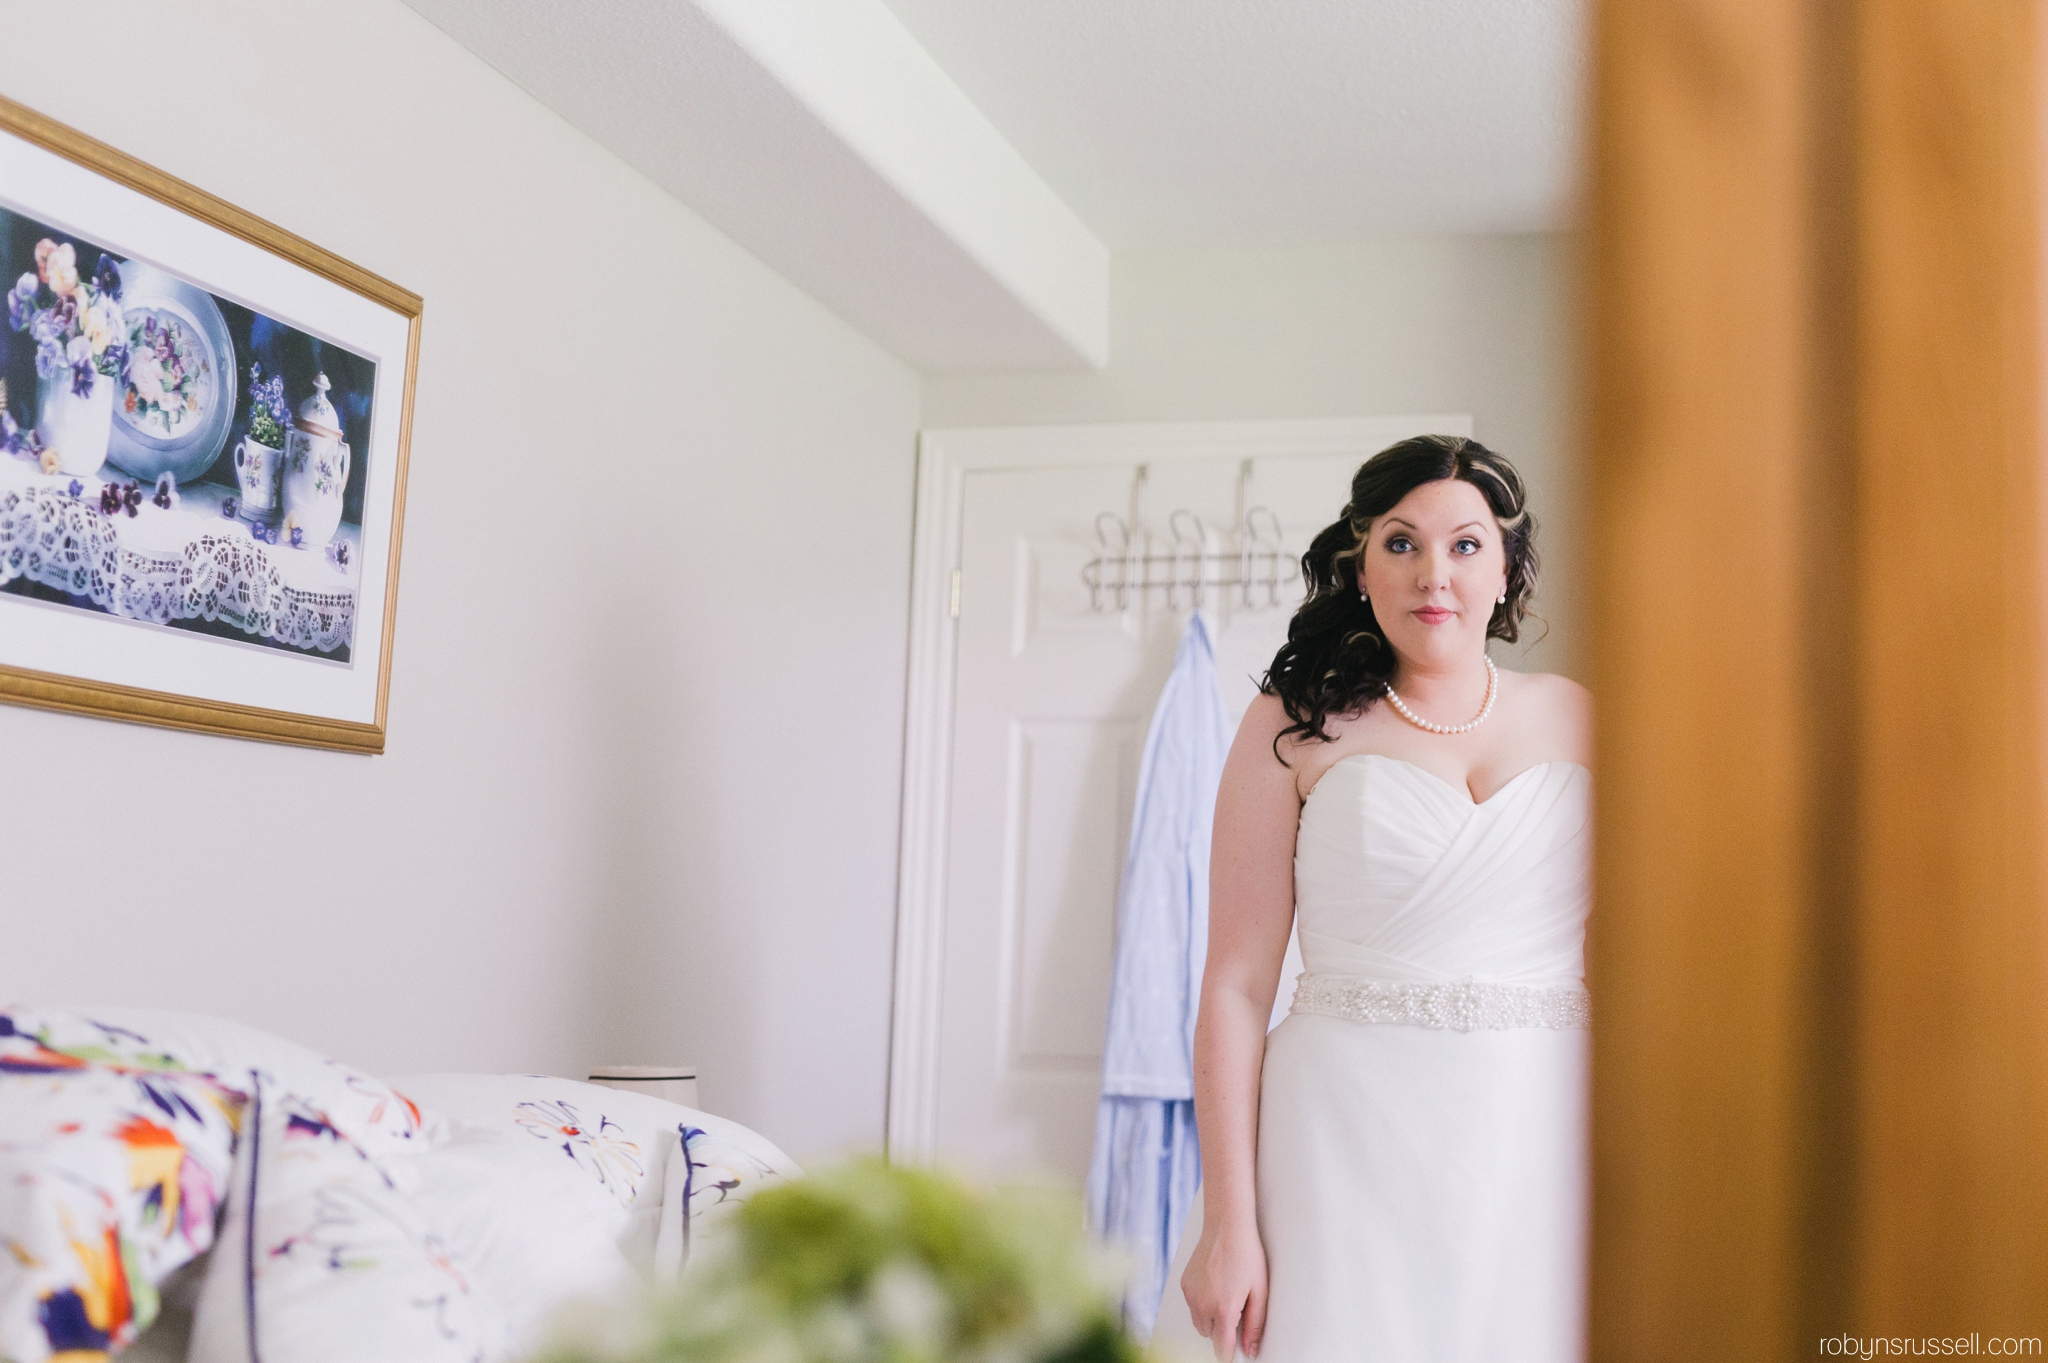 12-bride-getting-emotional-in-grandmothers-room.jpg